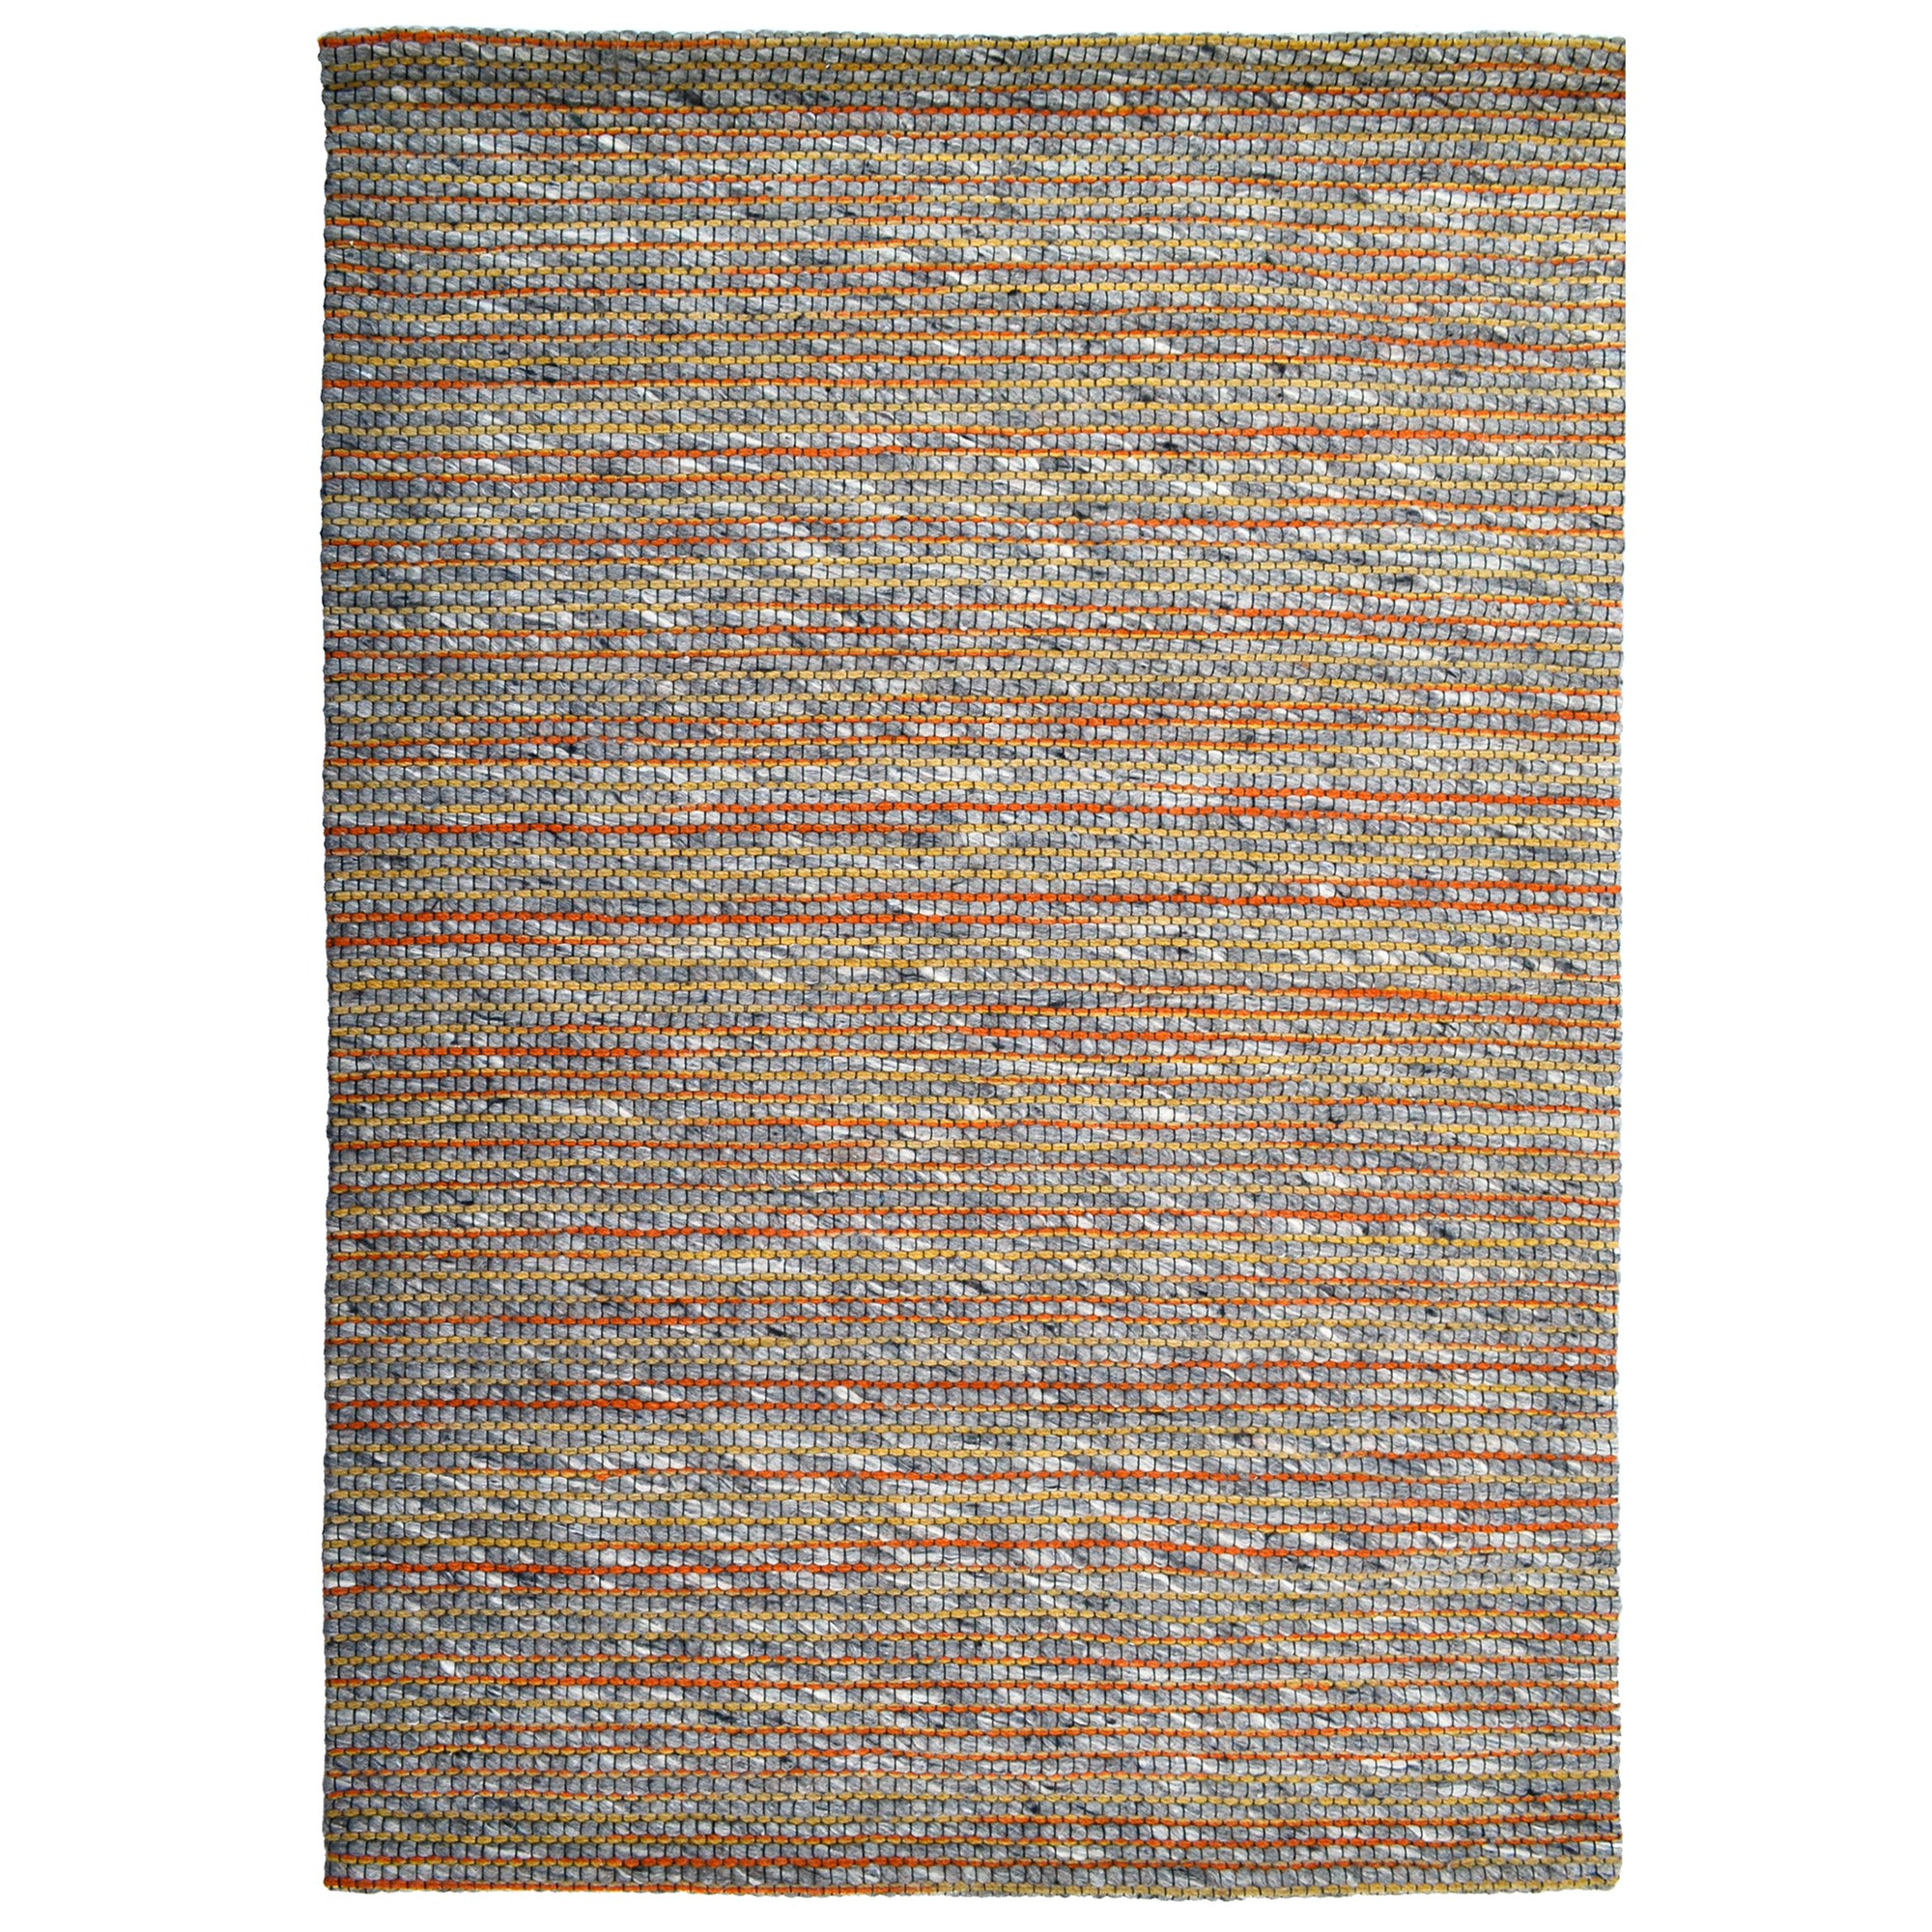 Sua Handwoven Wool Rug, 90x60cm, Orange/Charcoal